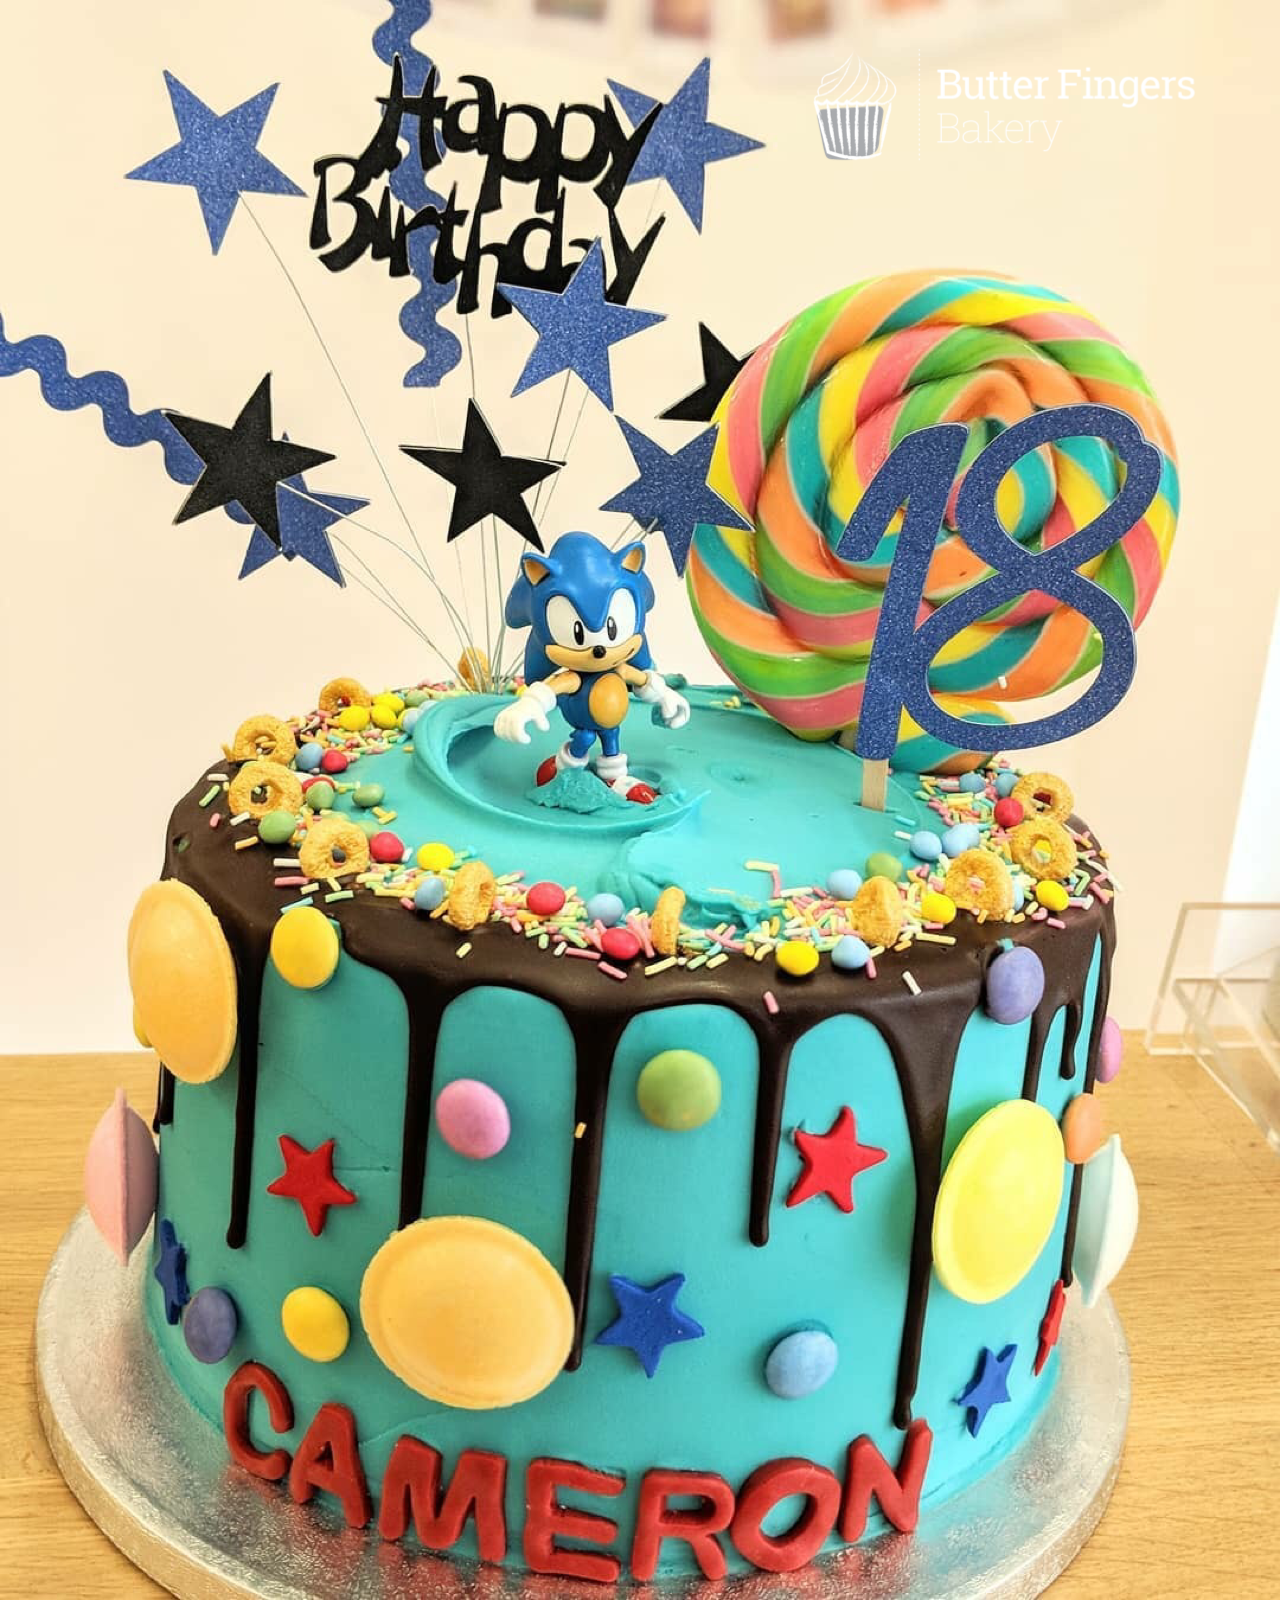 Butter Fingers Bakery Tasty Homemade Cakes Baked Freshly In Matlock Sonic Birthday Cake Sonic Cake Sonic The Hedgehog Cake